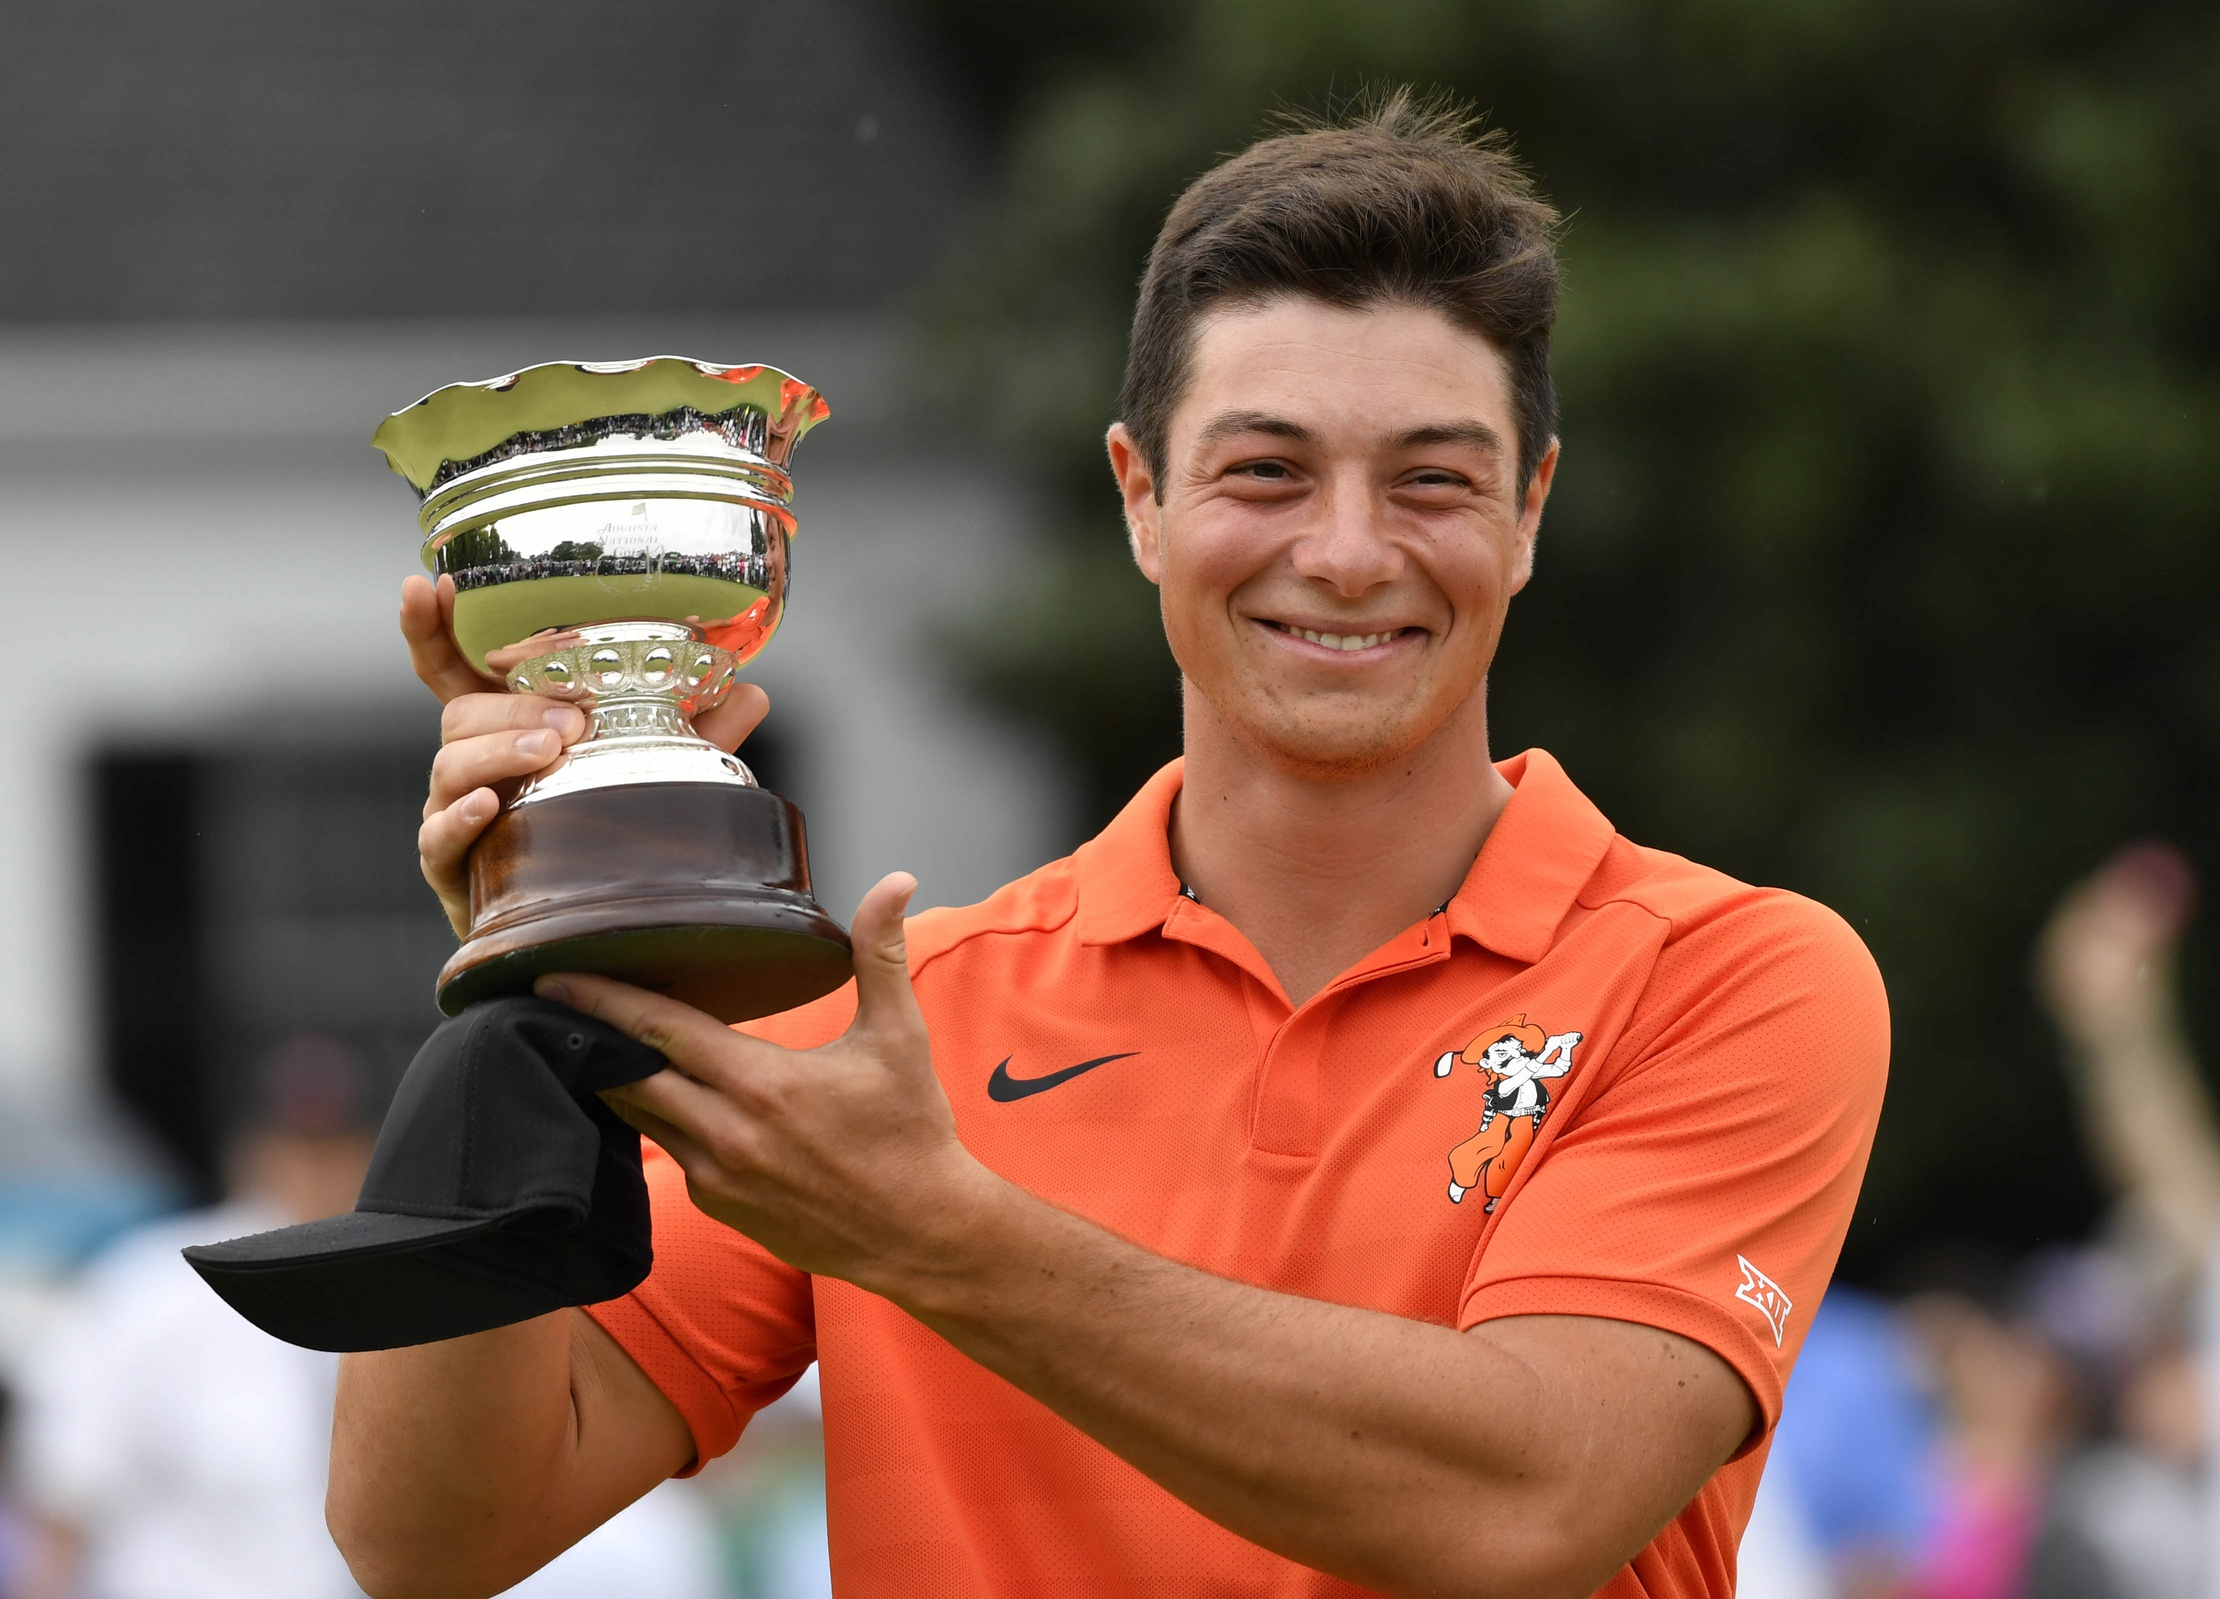 viktor hovland wins low amateur at masters  sits in butler